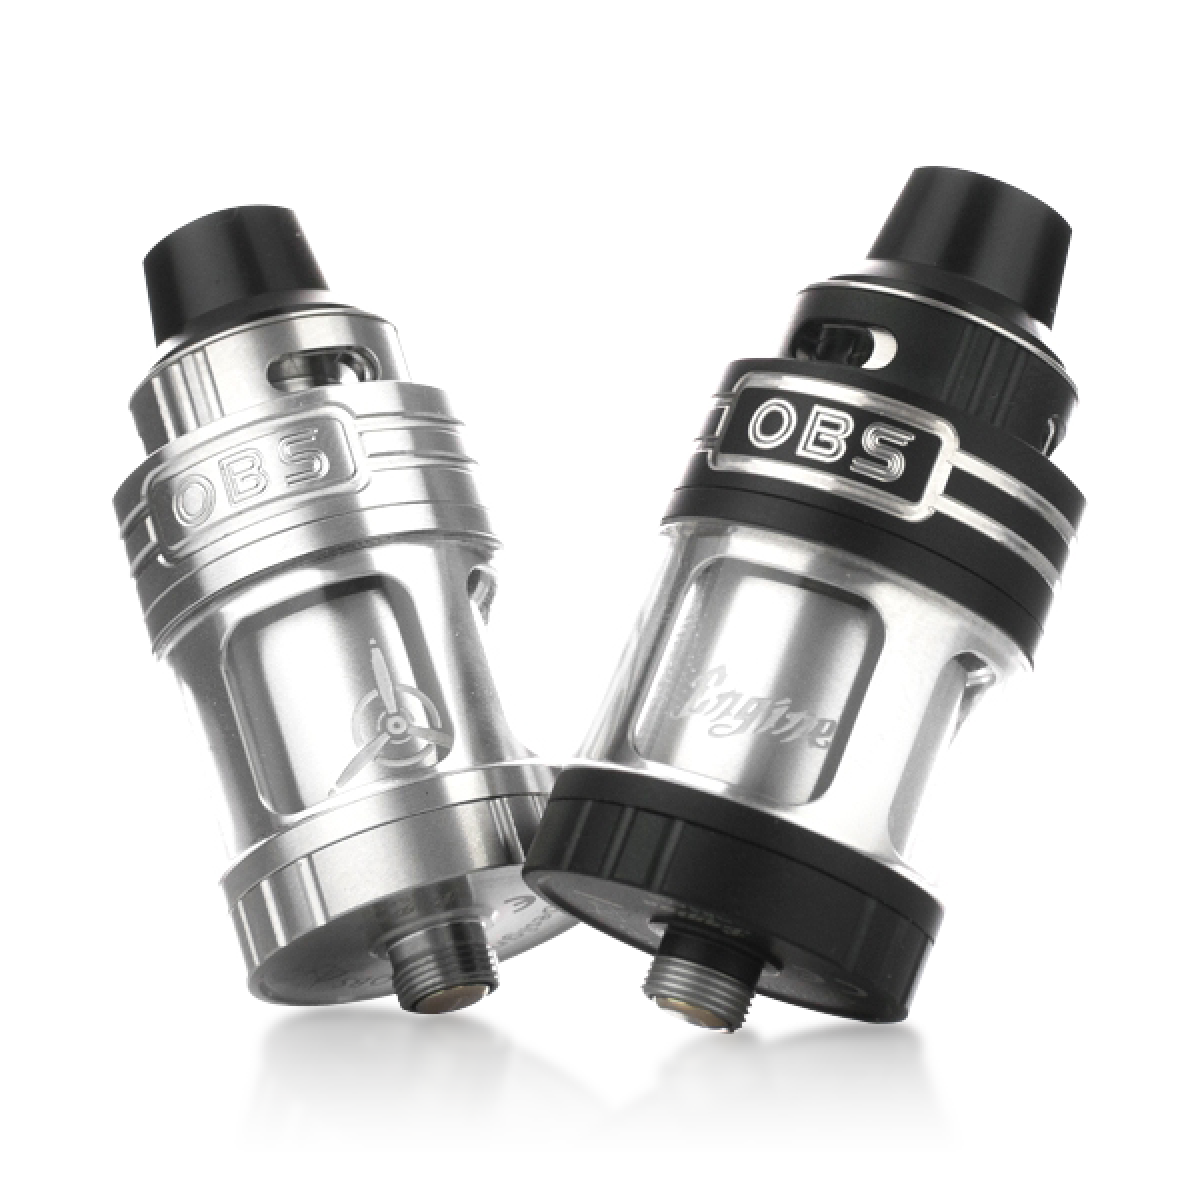 Obs transparent engine rta. Ml tank more